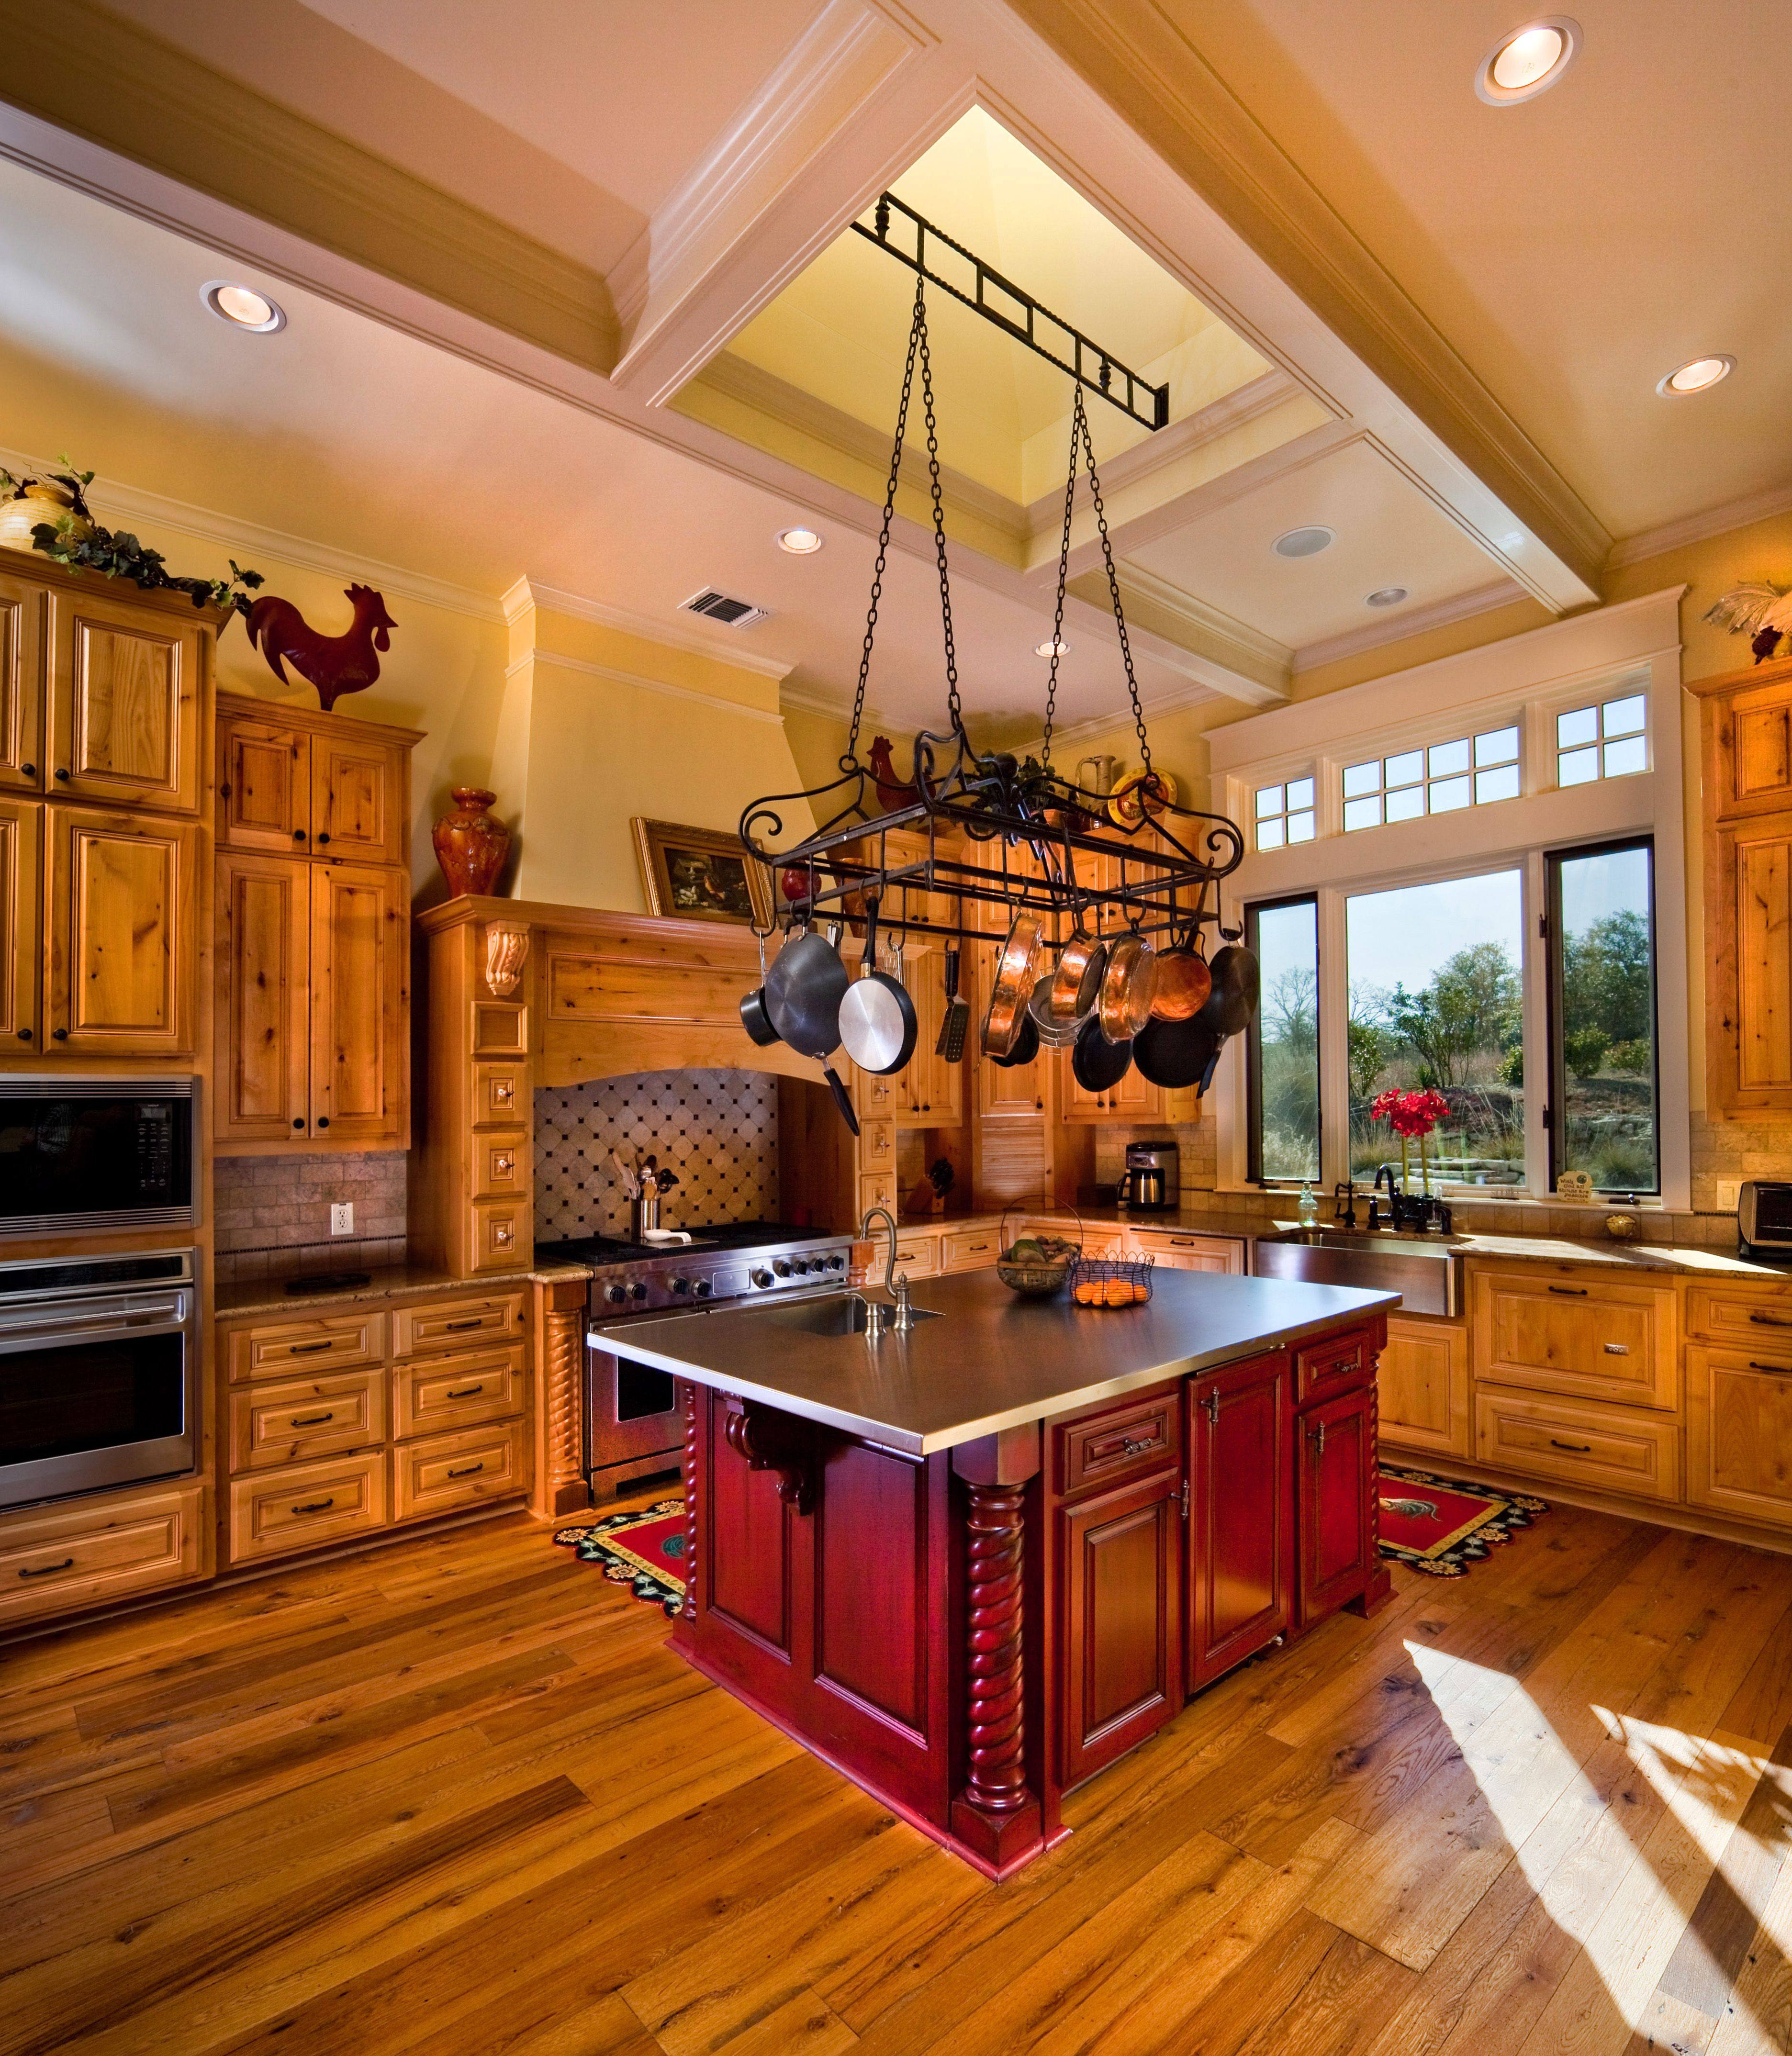 Kitchen Trends Knotty Alder Kitchen Cabinets: Knotty Alder Cabinets And Reclaimed Oak Flooring Are